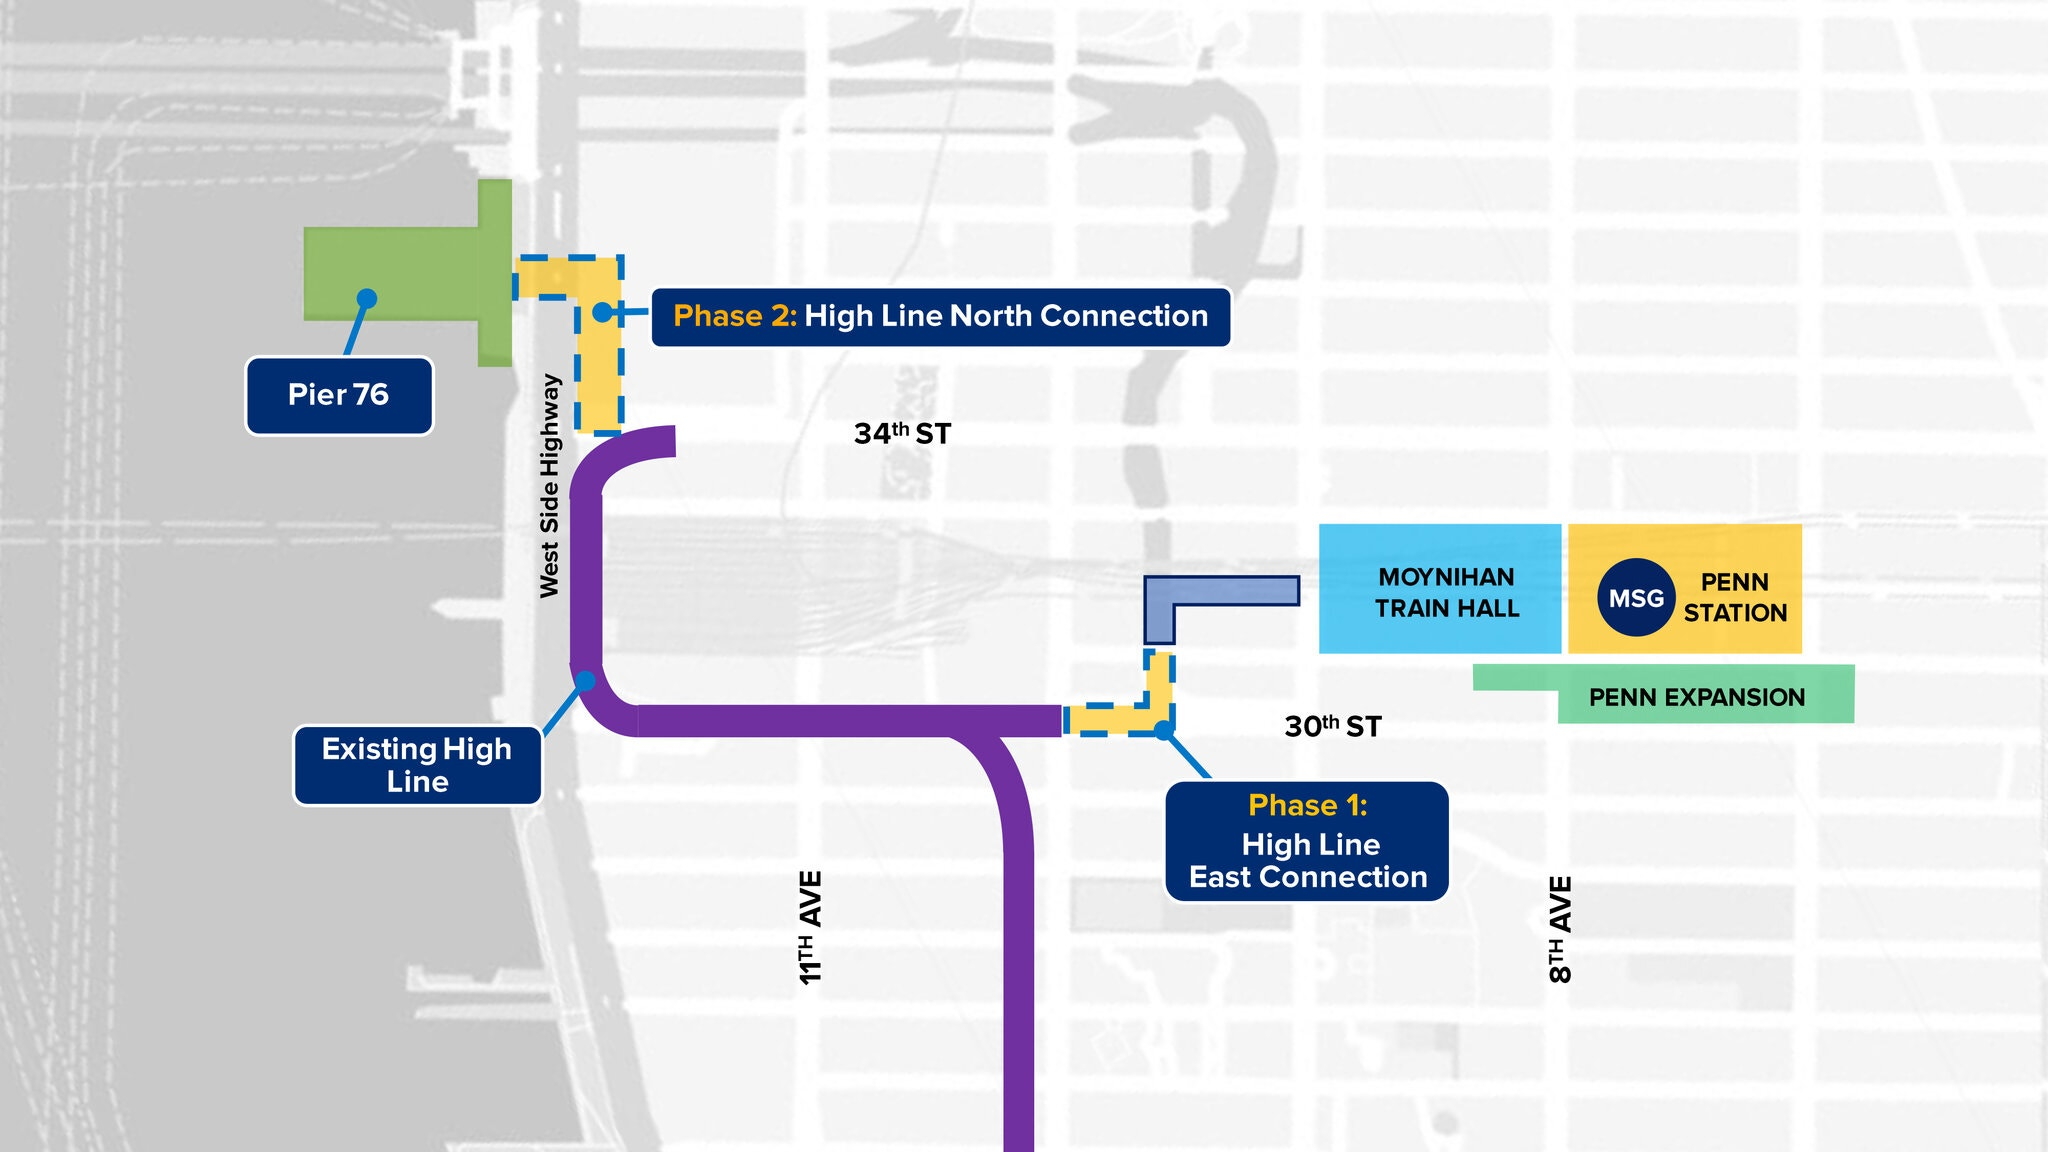 Cuomo's proposed extension of the High Line. Hochul has not discussed the second phase